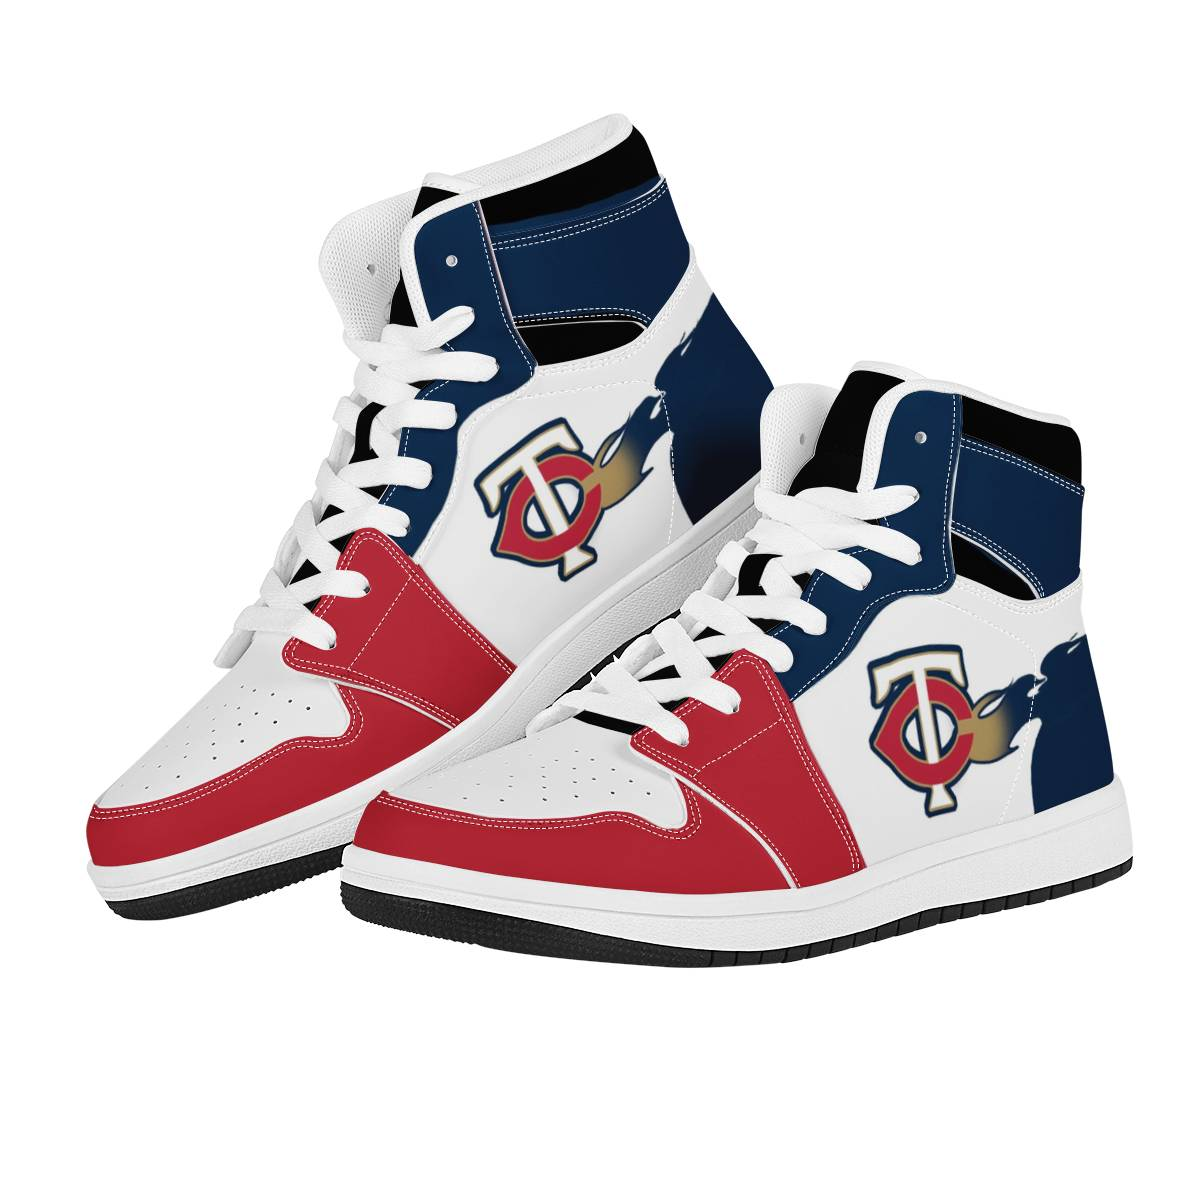 Men's Minnesota Twins High Top Leather AJ1 Sneakers 001